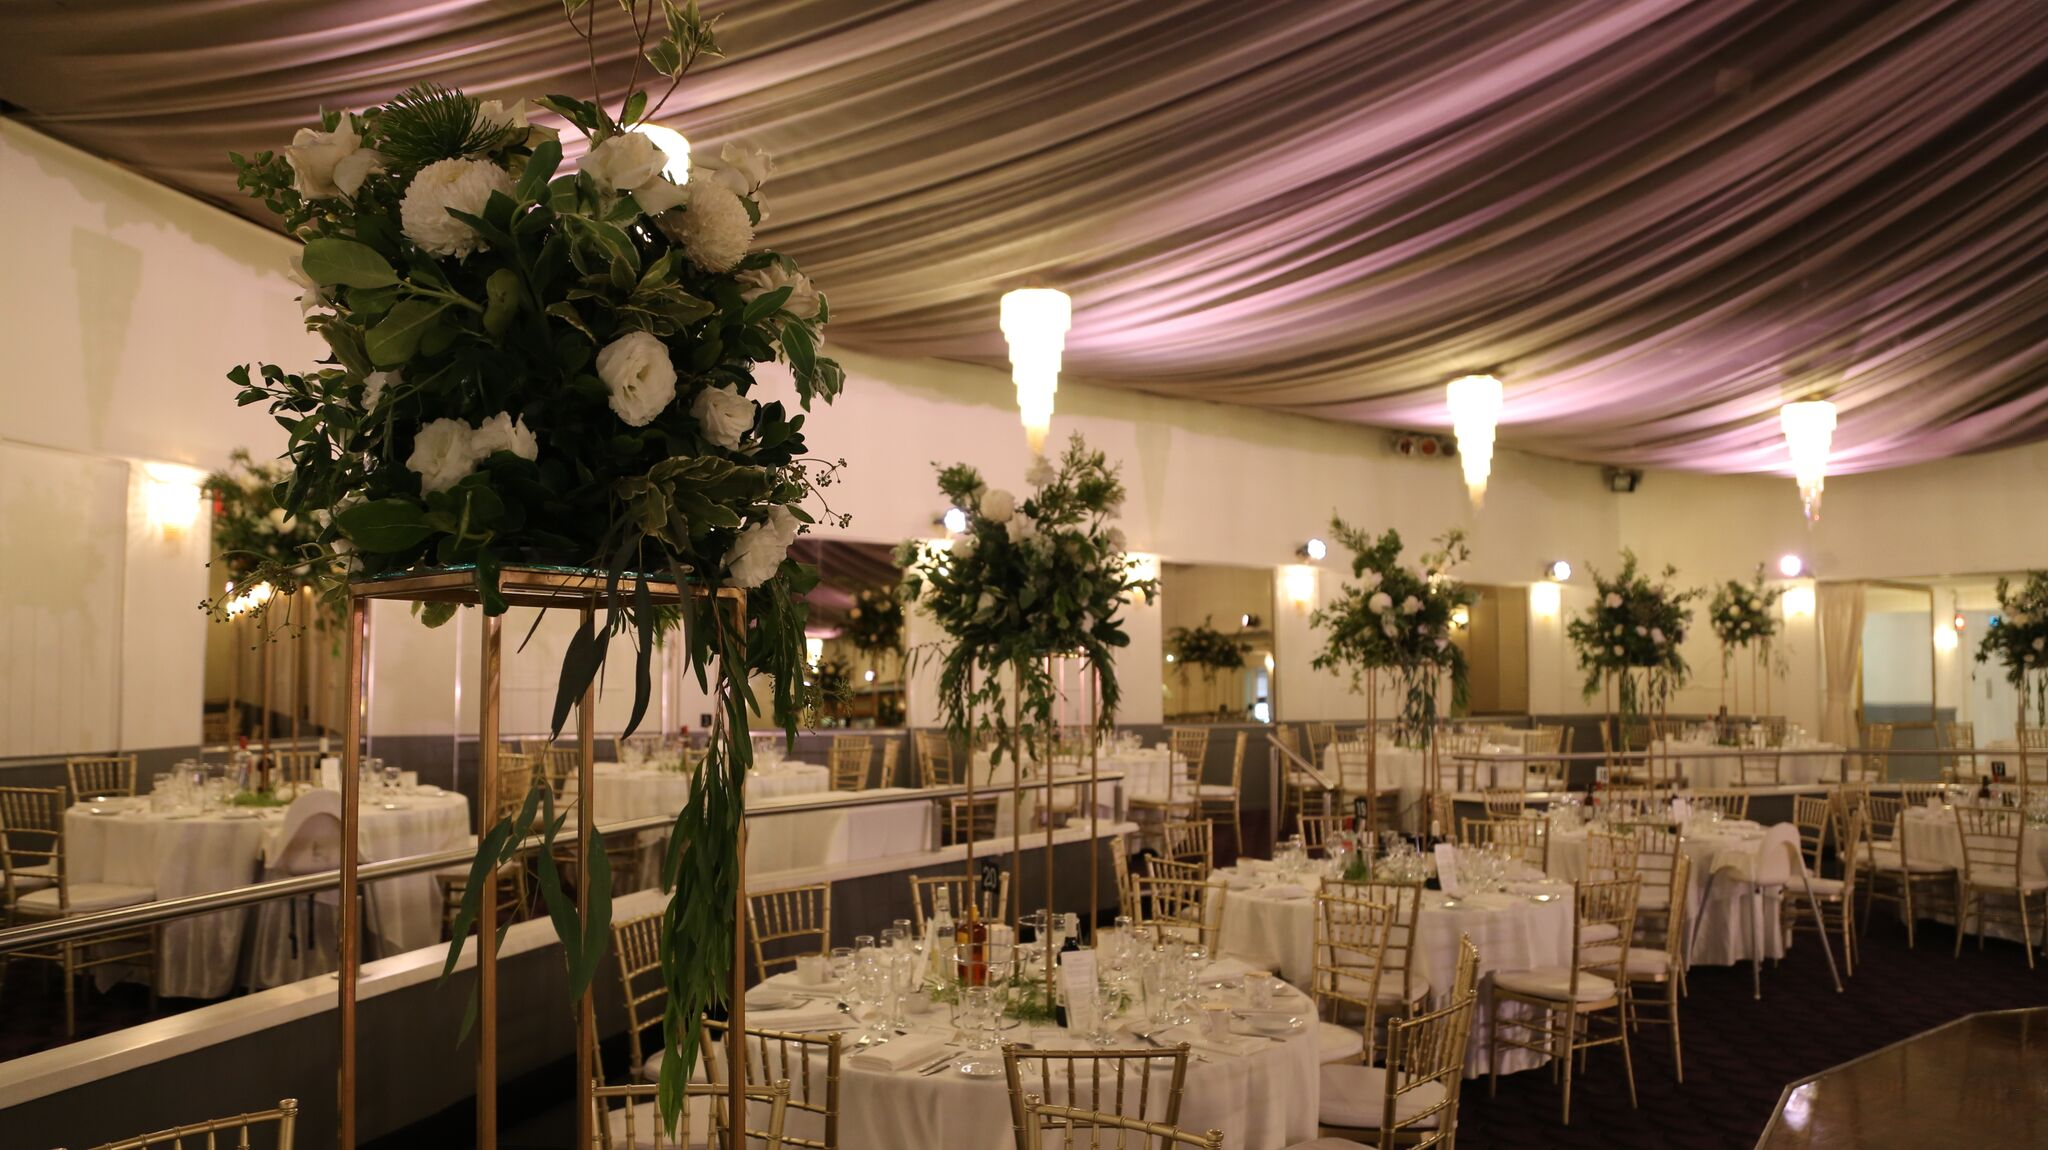 tall floral arrangement next to white draped tables set for dinner